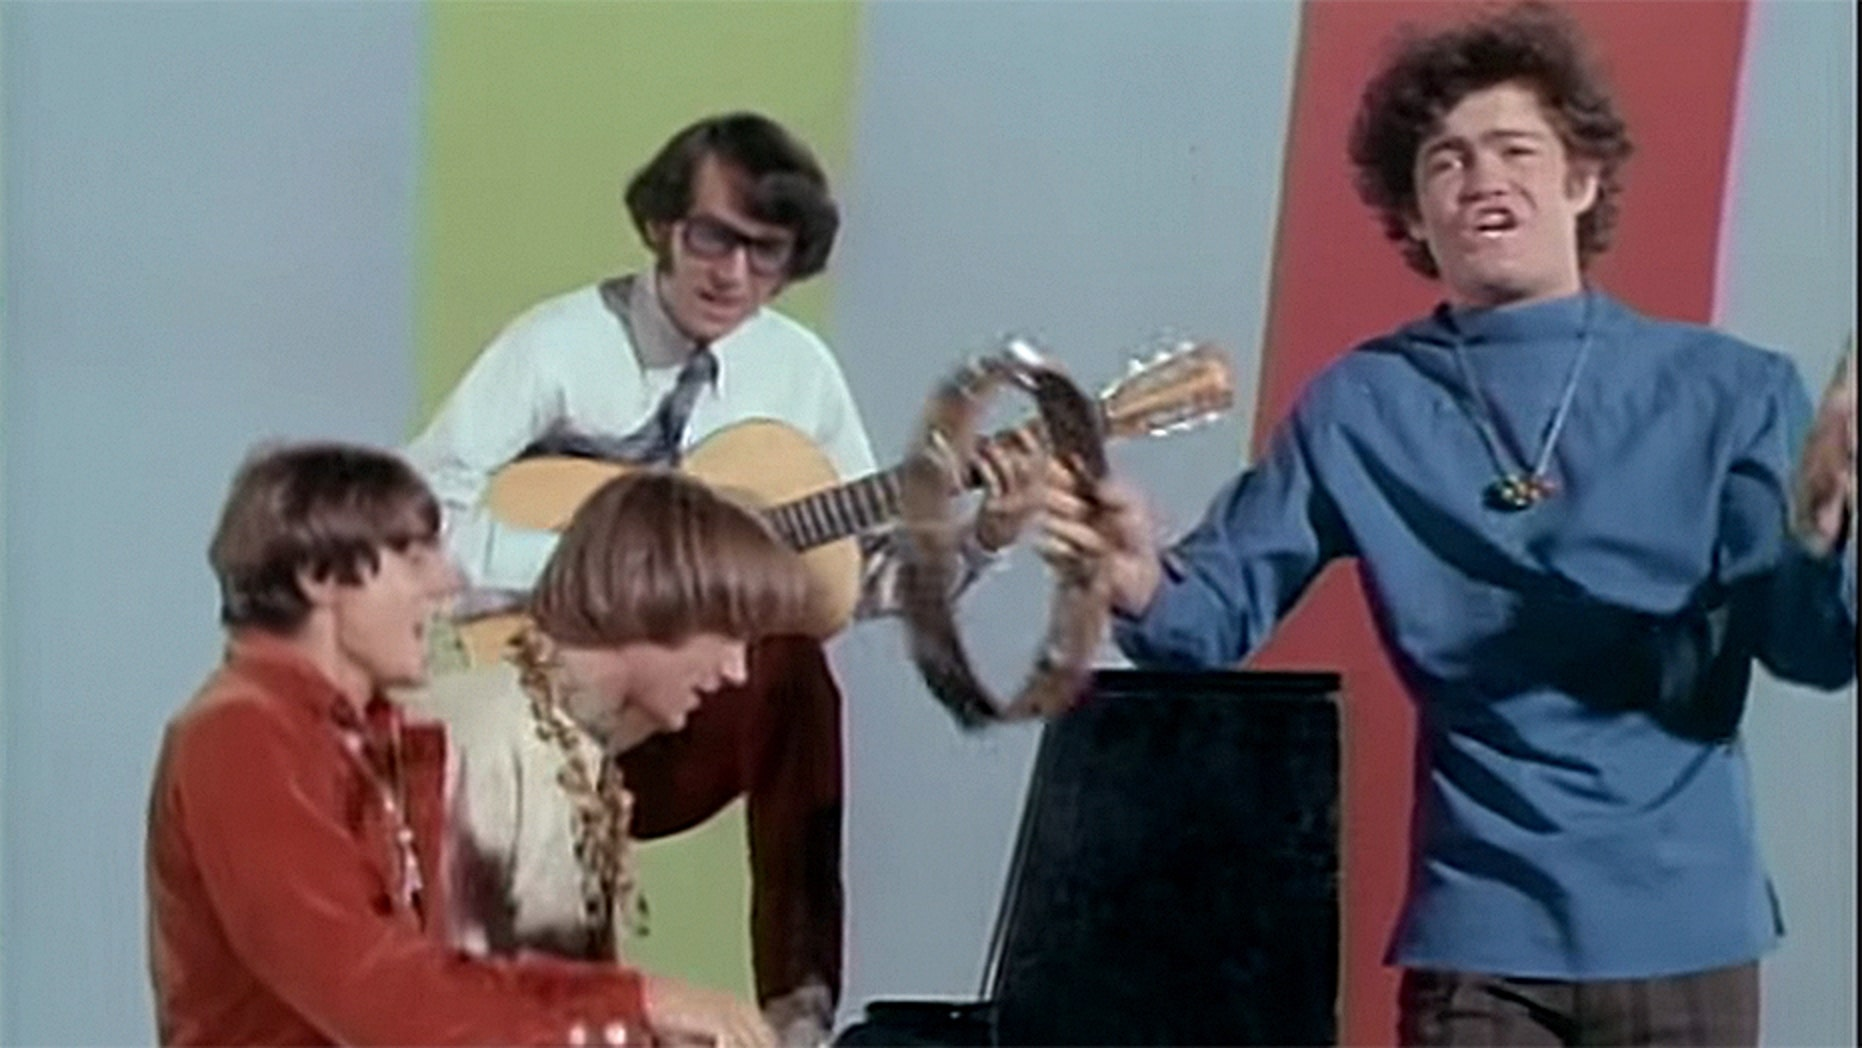 Micky Dolenz (right) of The Monkees.